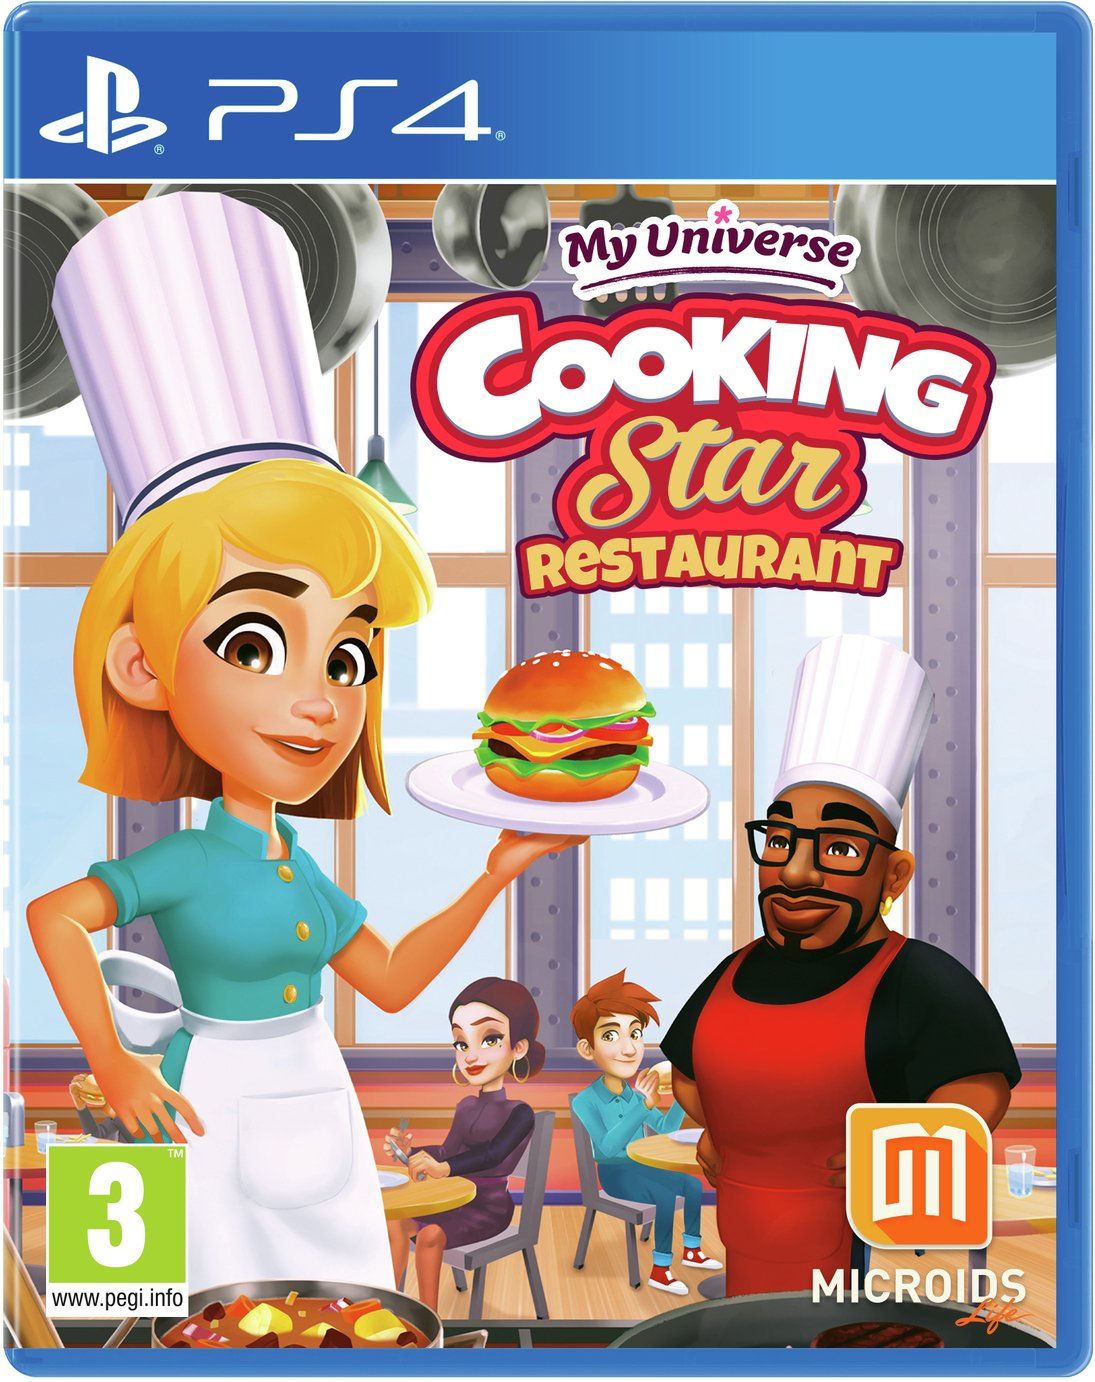 My Universe: Cooking Star Restaurant PS4 Game Pre-Order